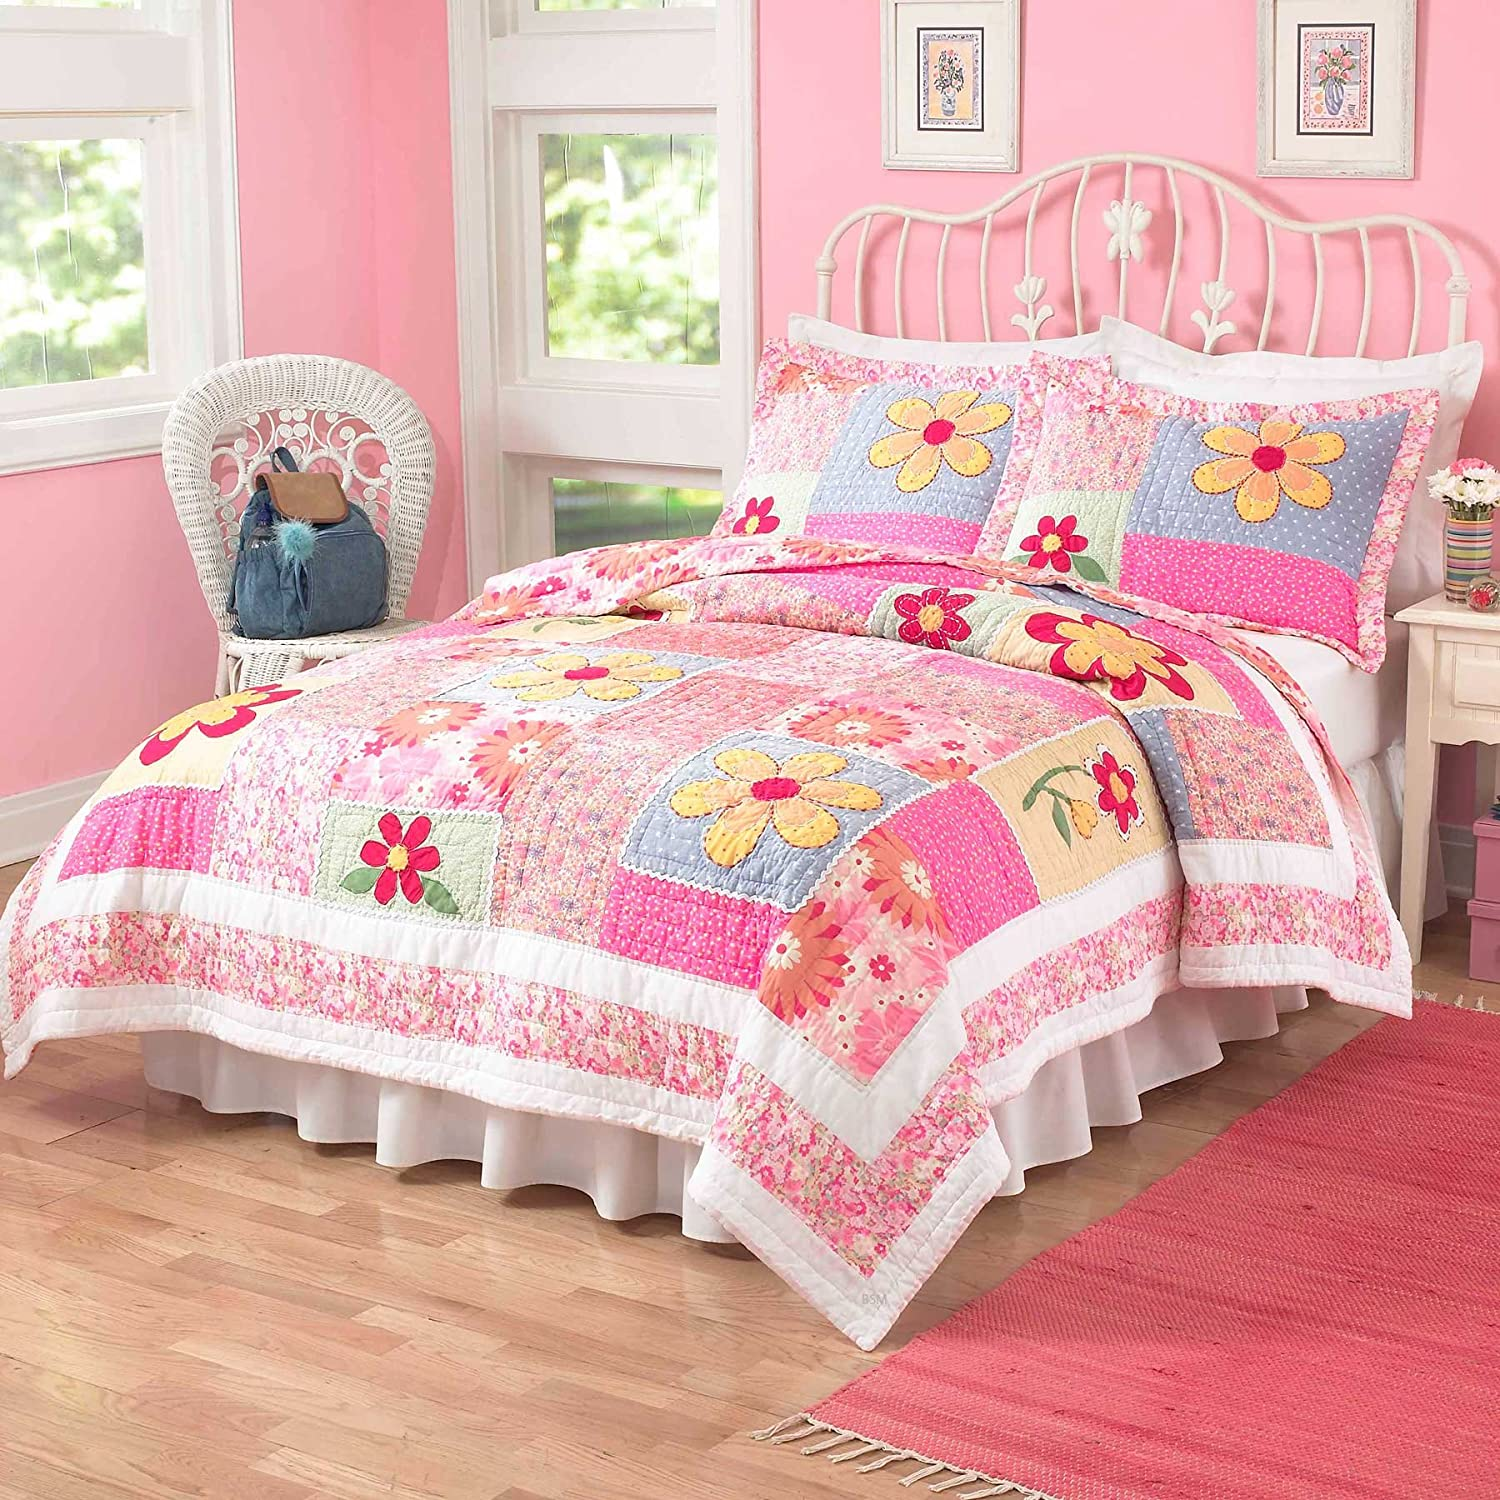 pink att arianna white peanut x and sets girl comforter photo bedding of piece shell crib set the baby